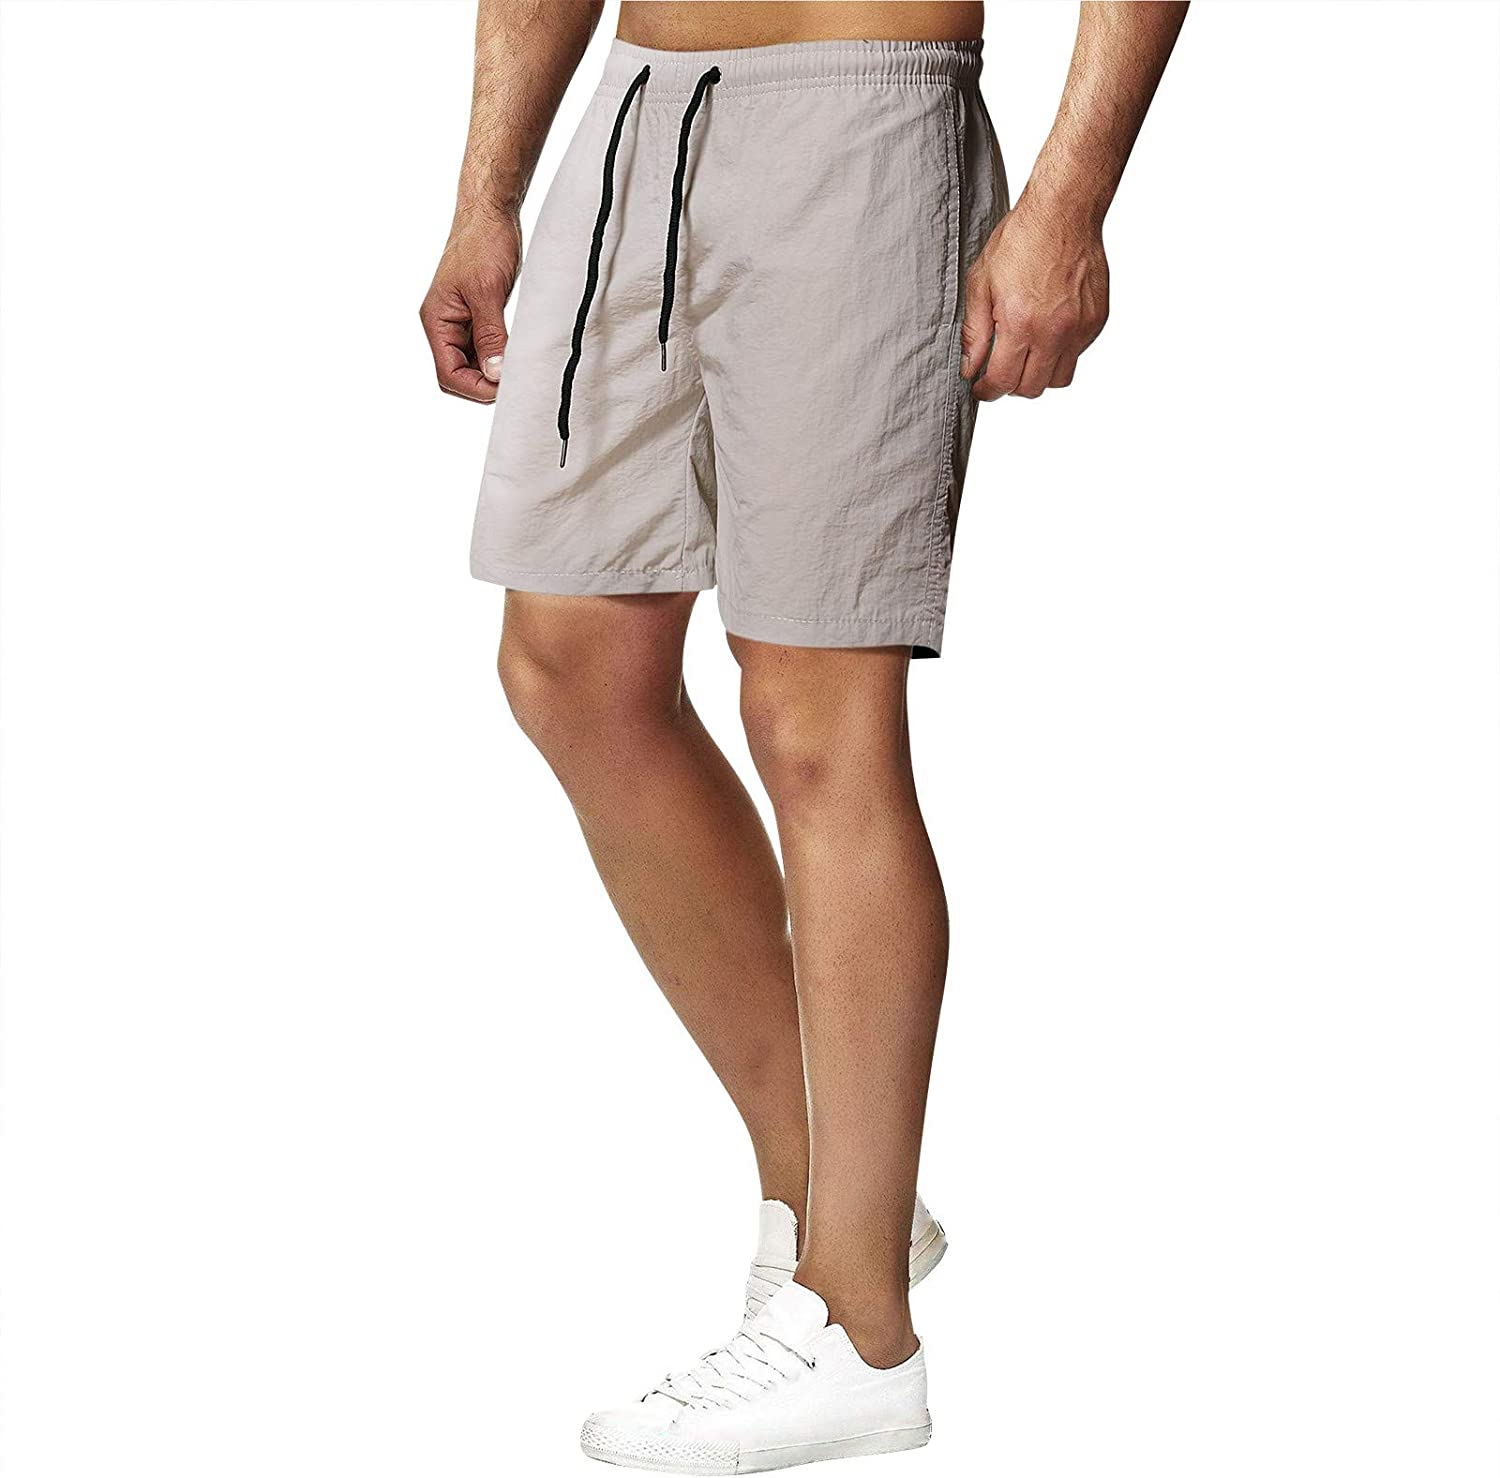 Muyise Beach Sports Fitness Shorts for Men Drawstring Lounge Pants Workout Running Trouser Comfy Casual Pants